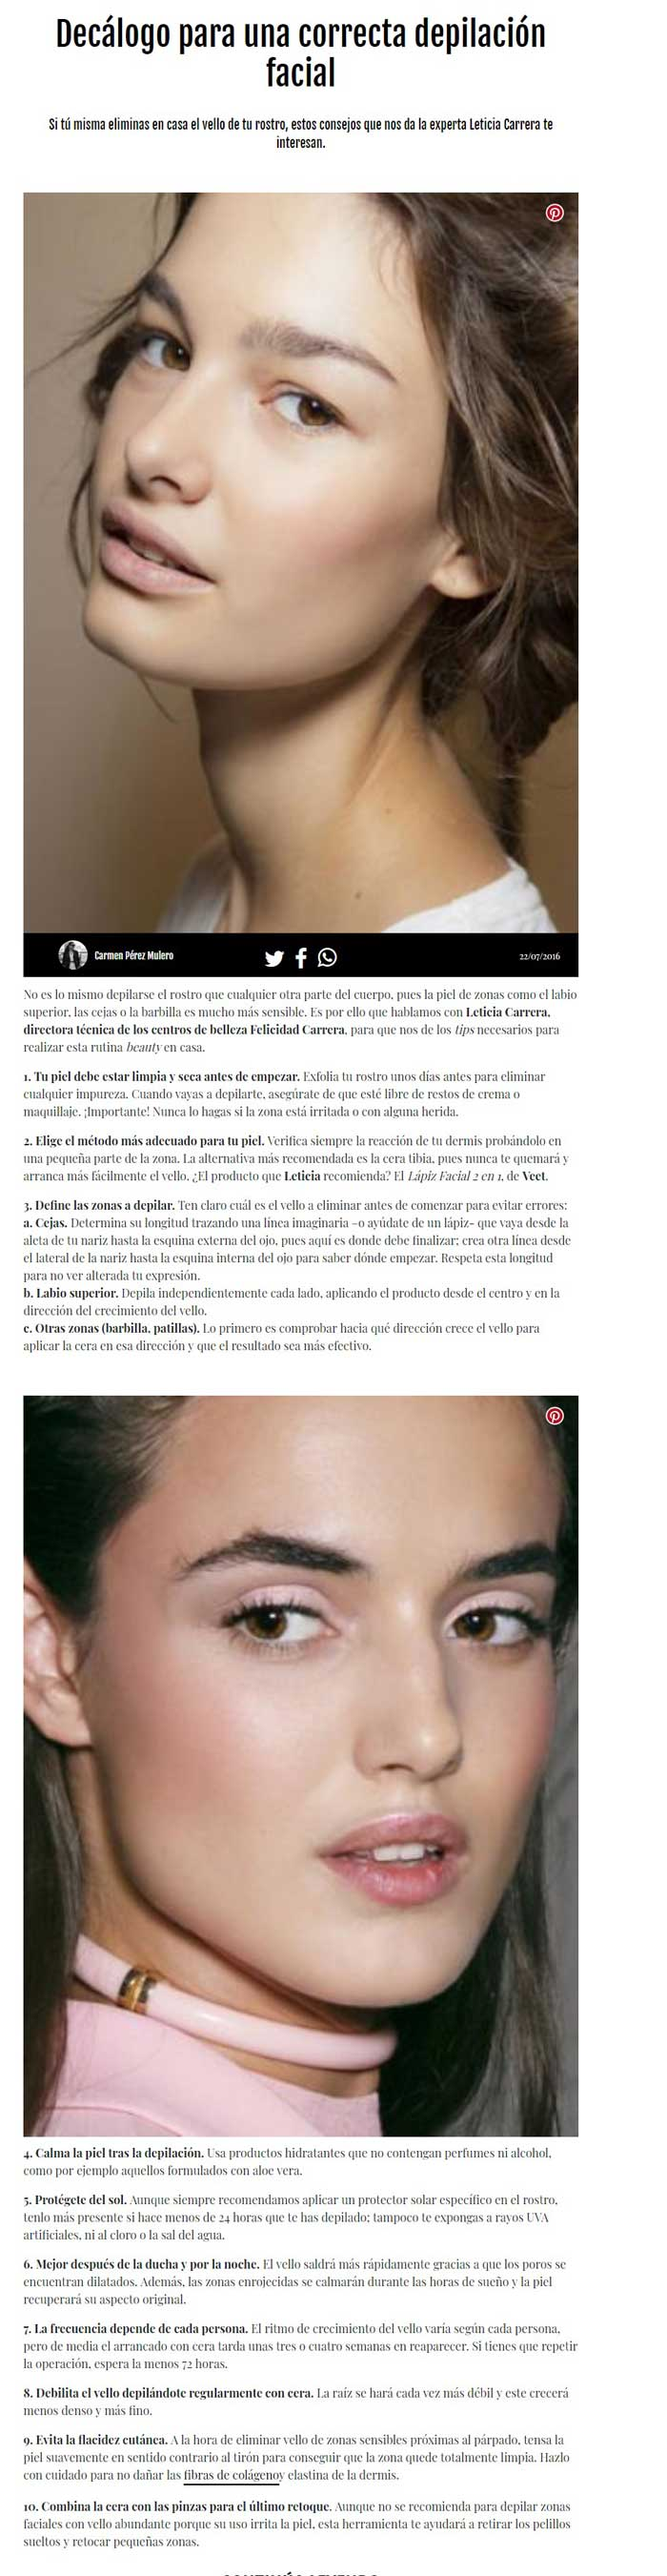 marie-claire-1